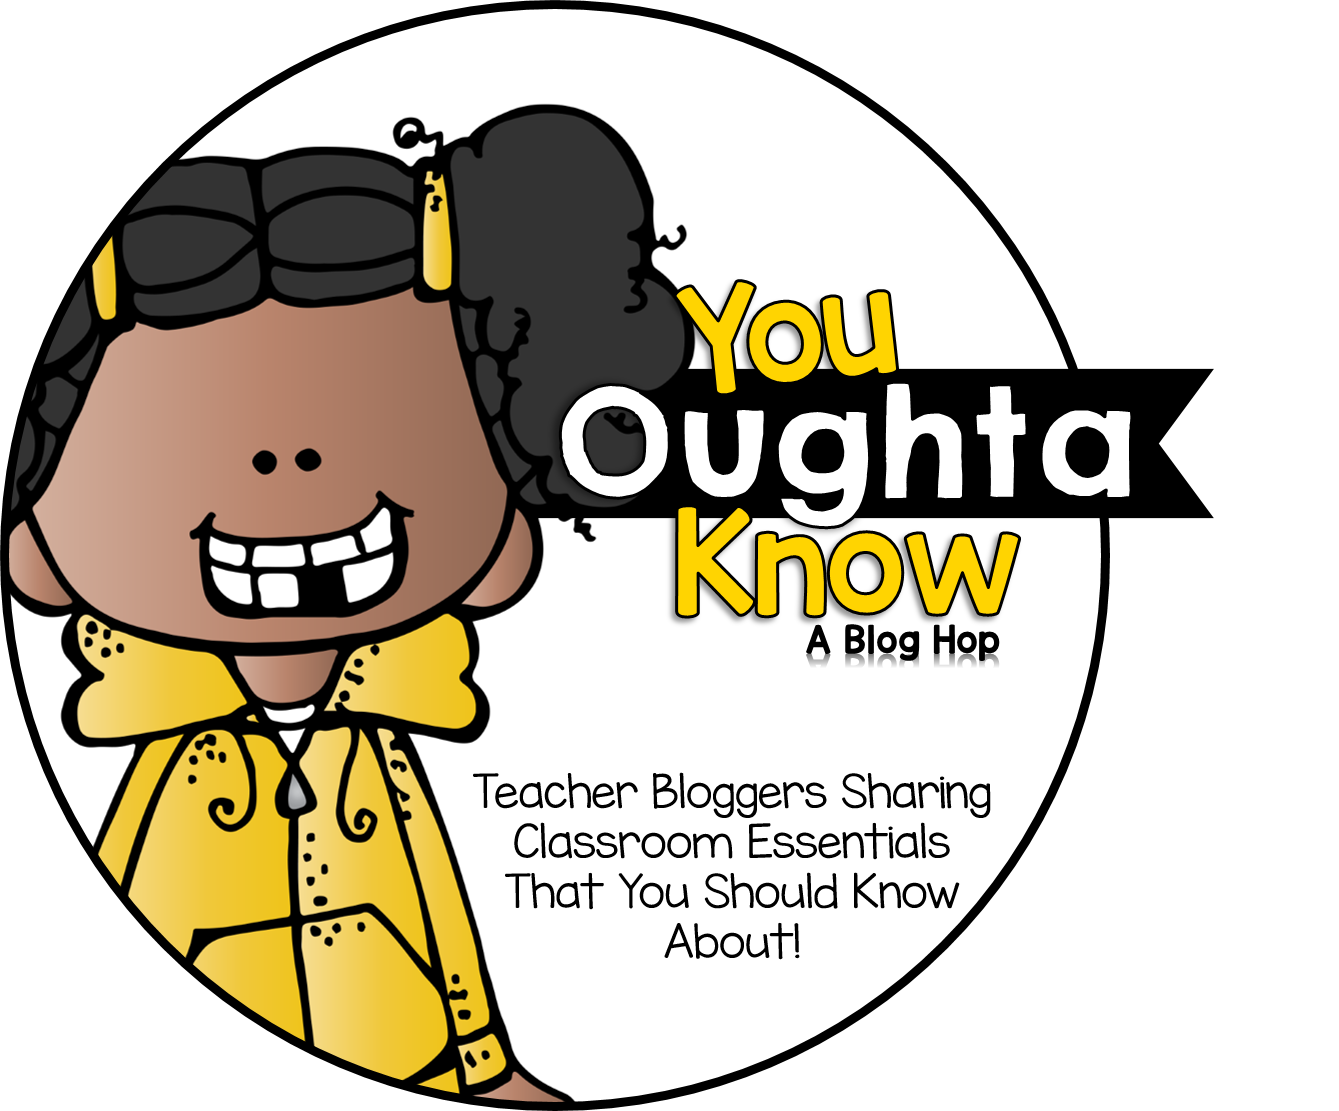 You oughta know classroom. Proud clipart teacher hug